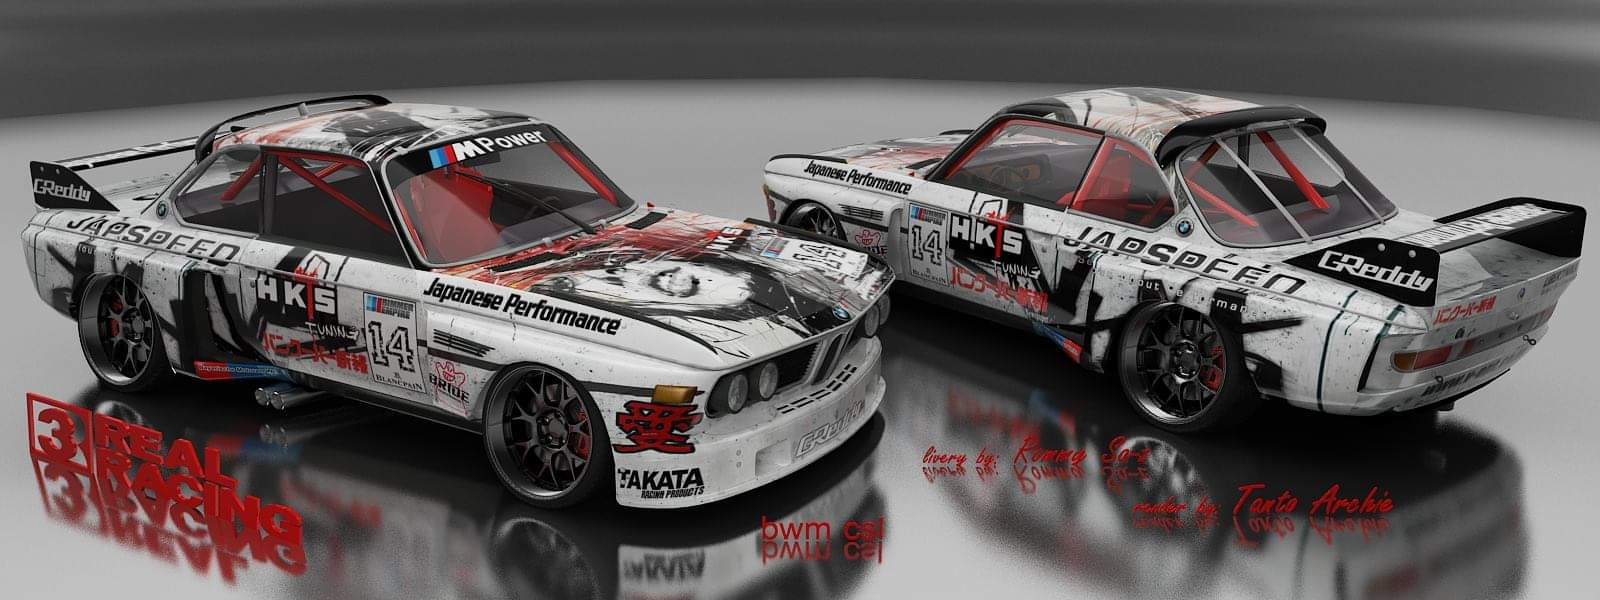 Bmw classic csl jap speed